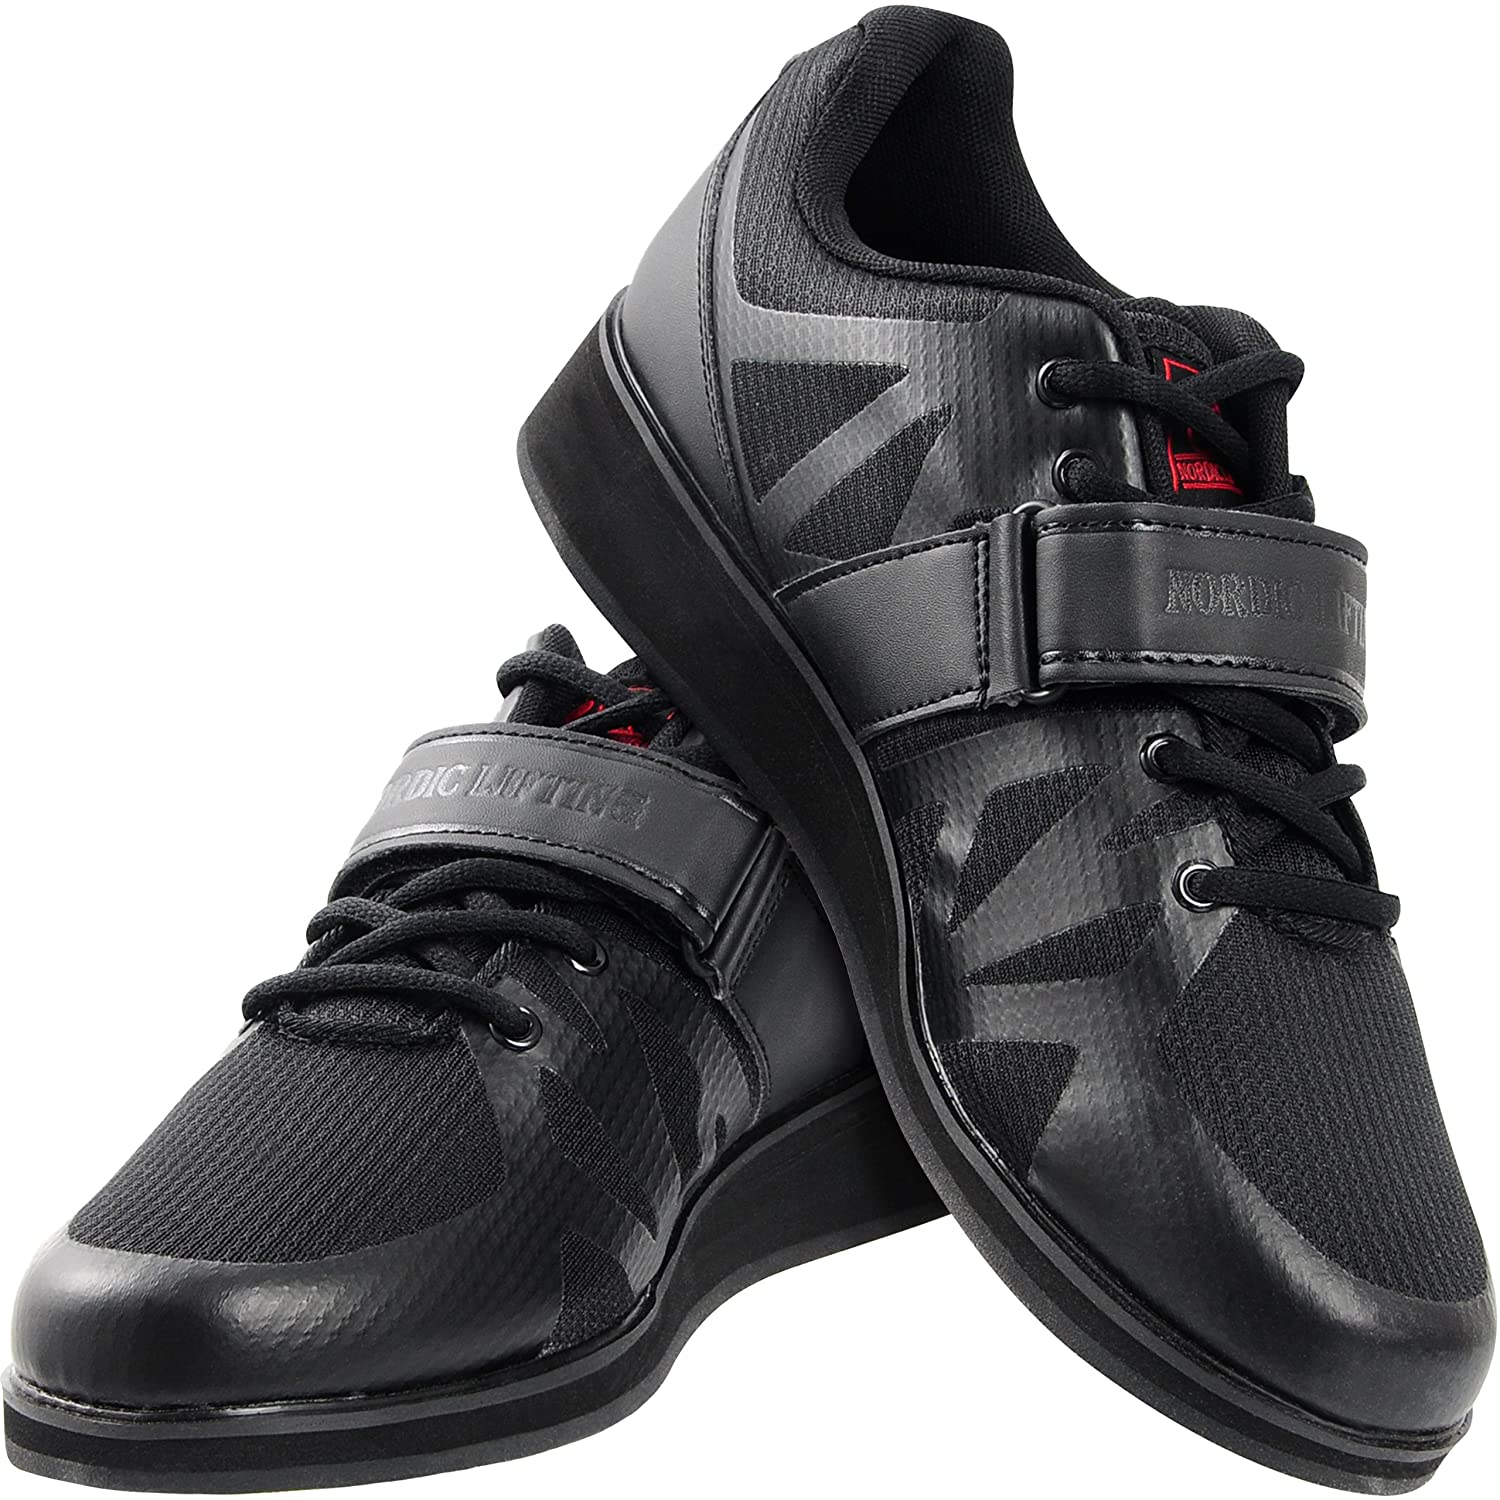 best squat shoes for powerlifting